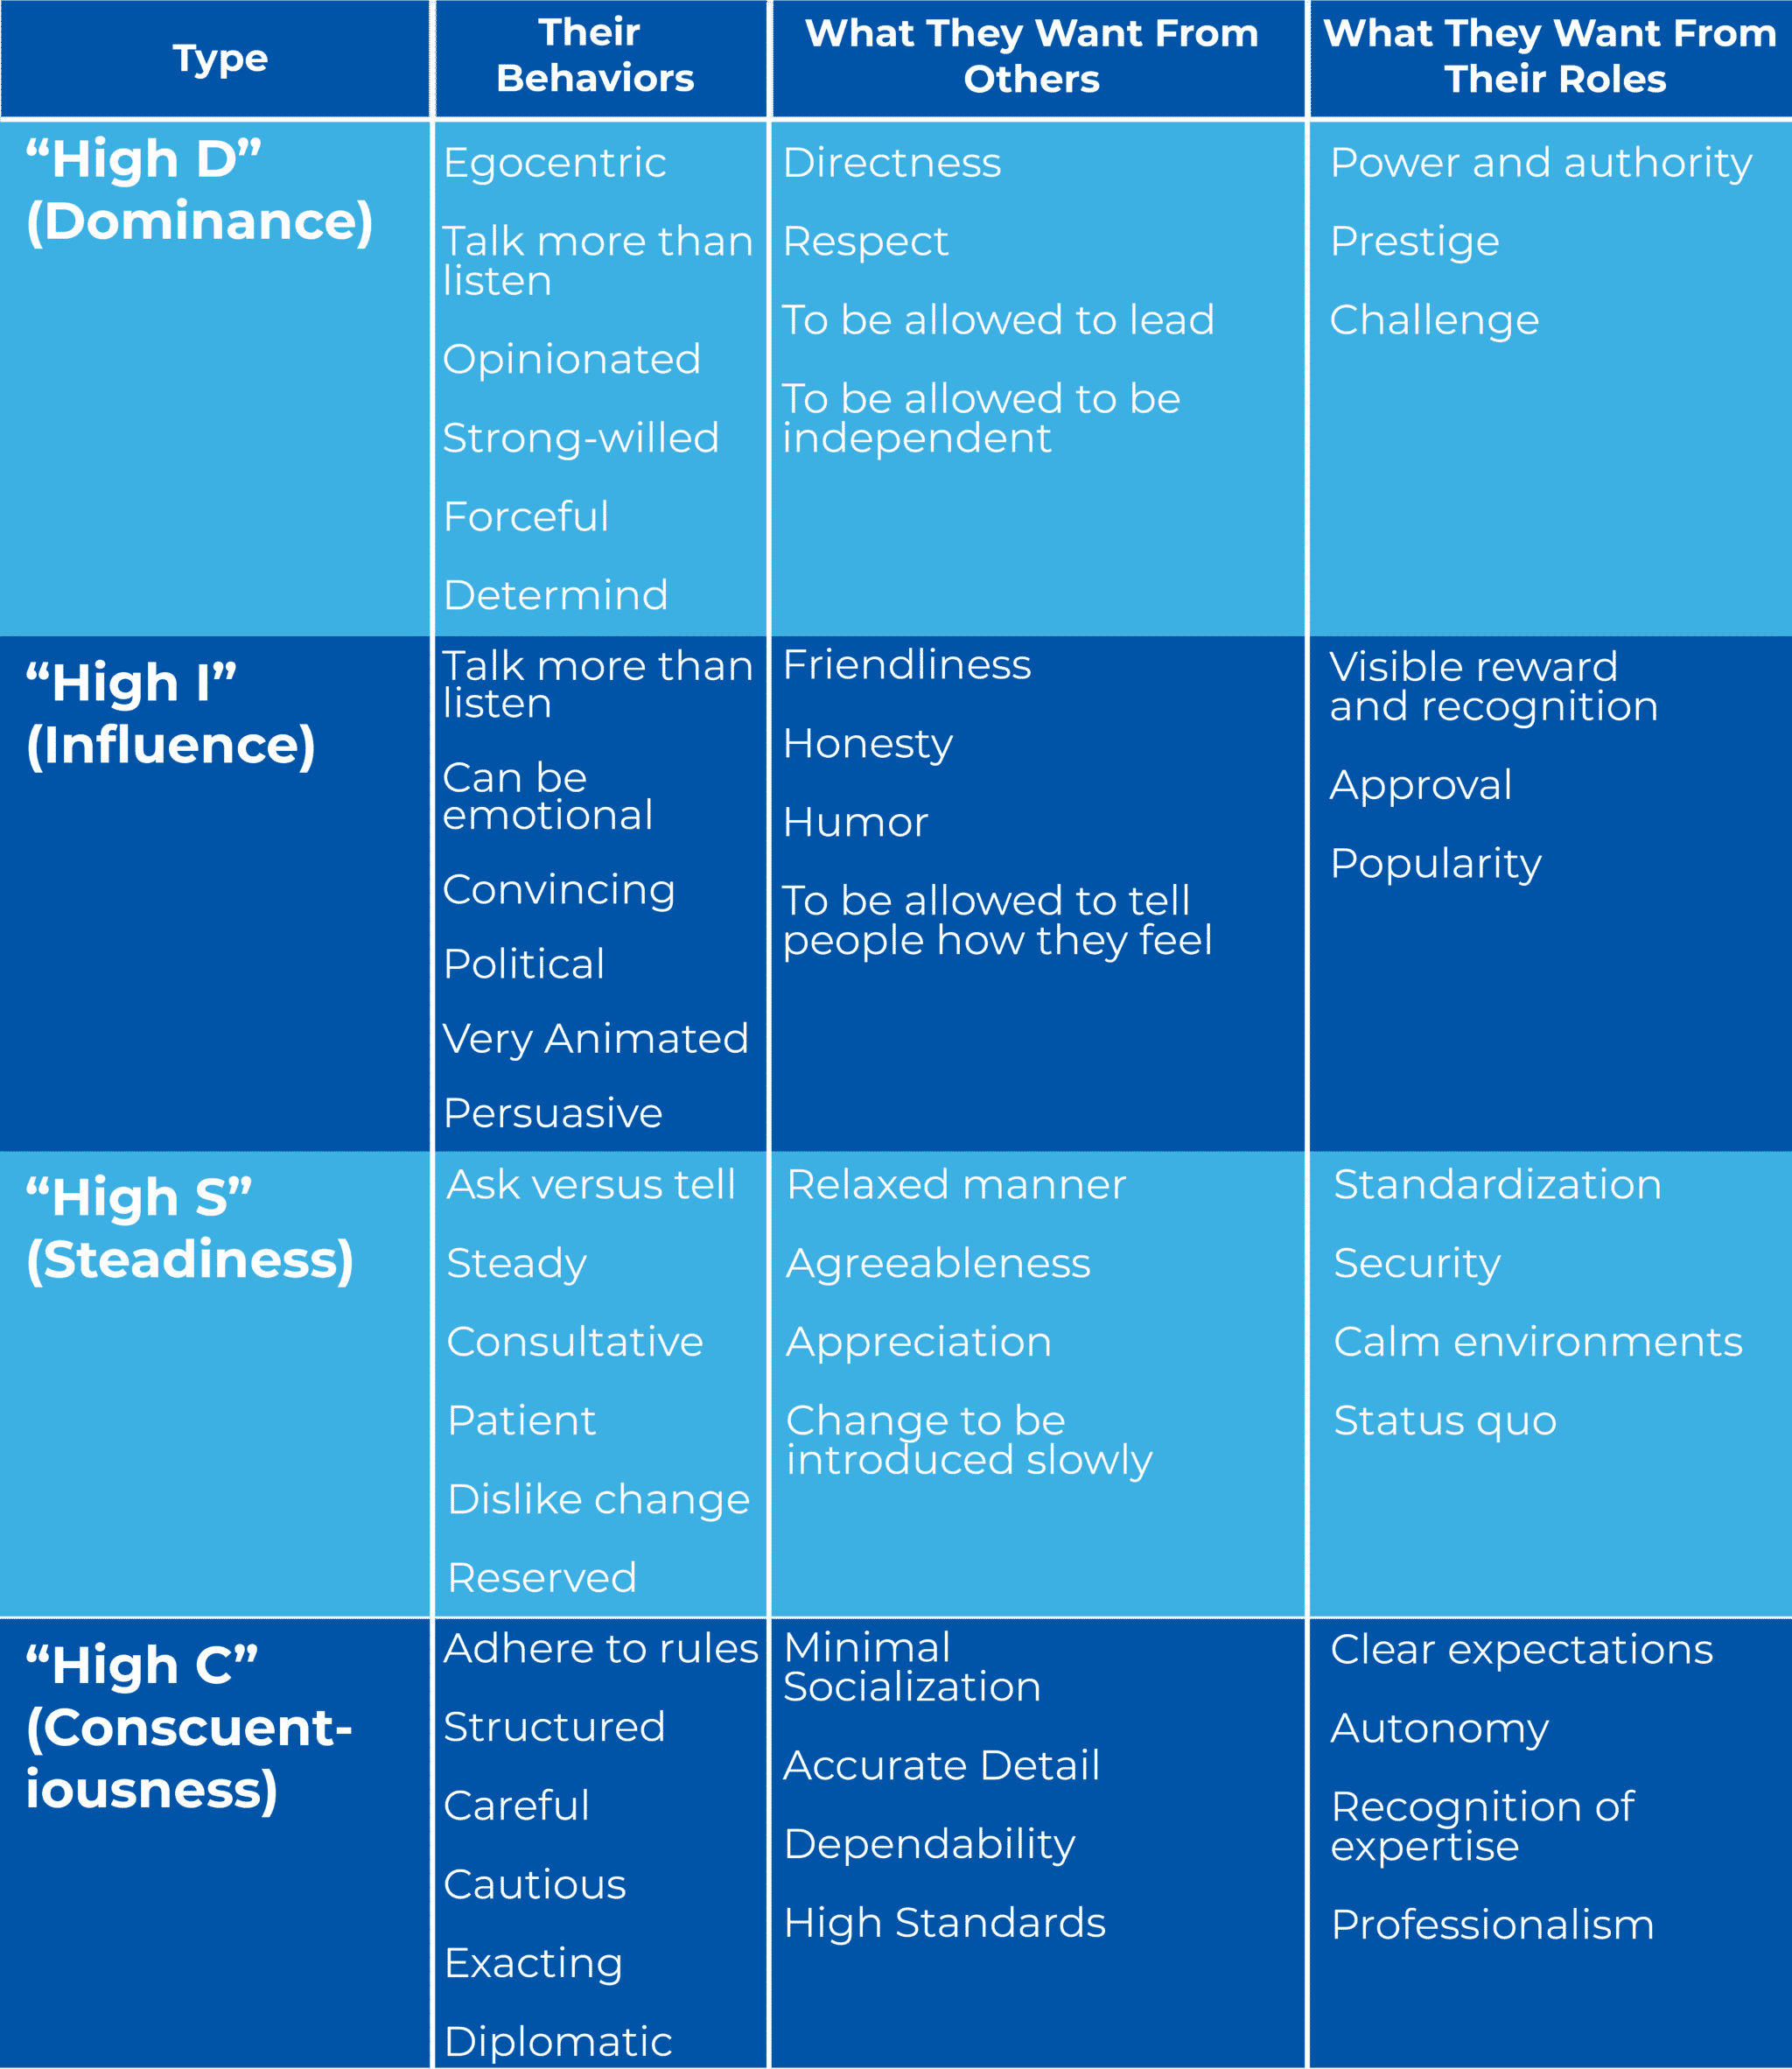 SUMMARY OF TRAITS OF EACH DiSC PERSONALITY TYPES